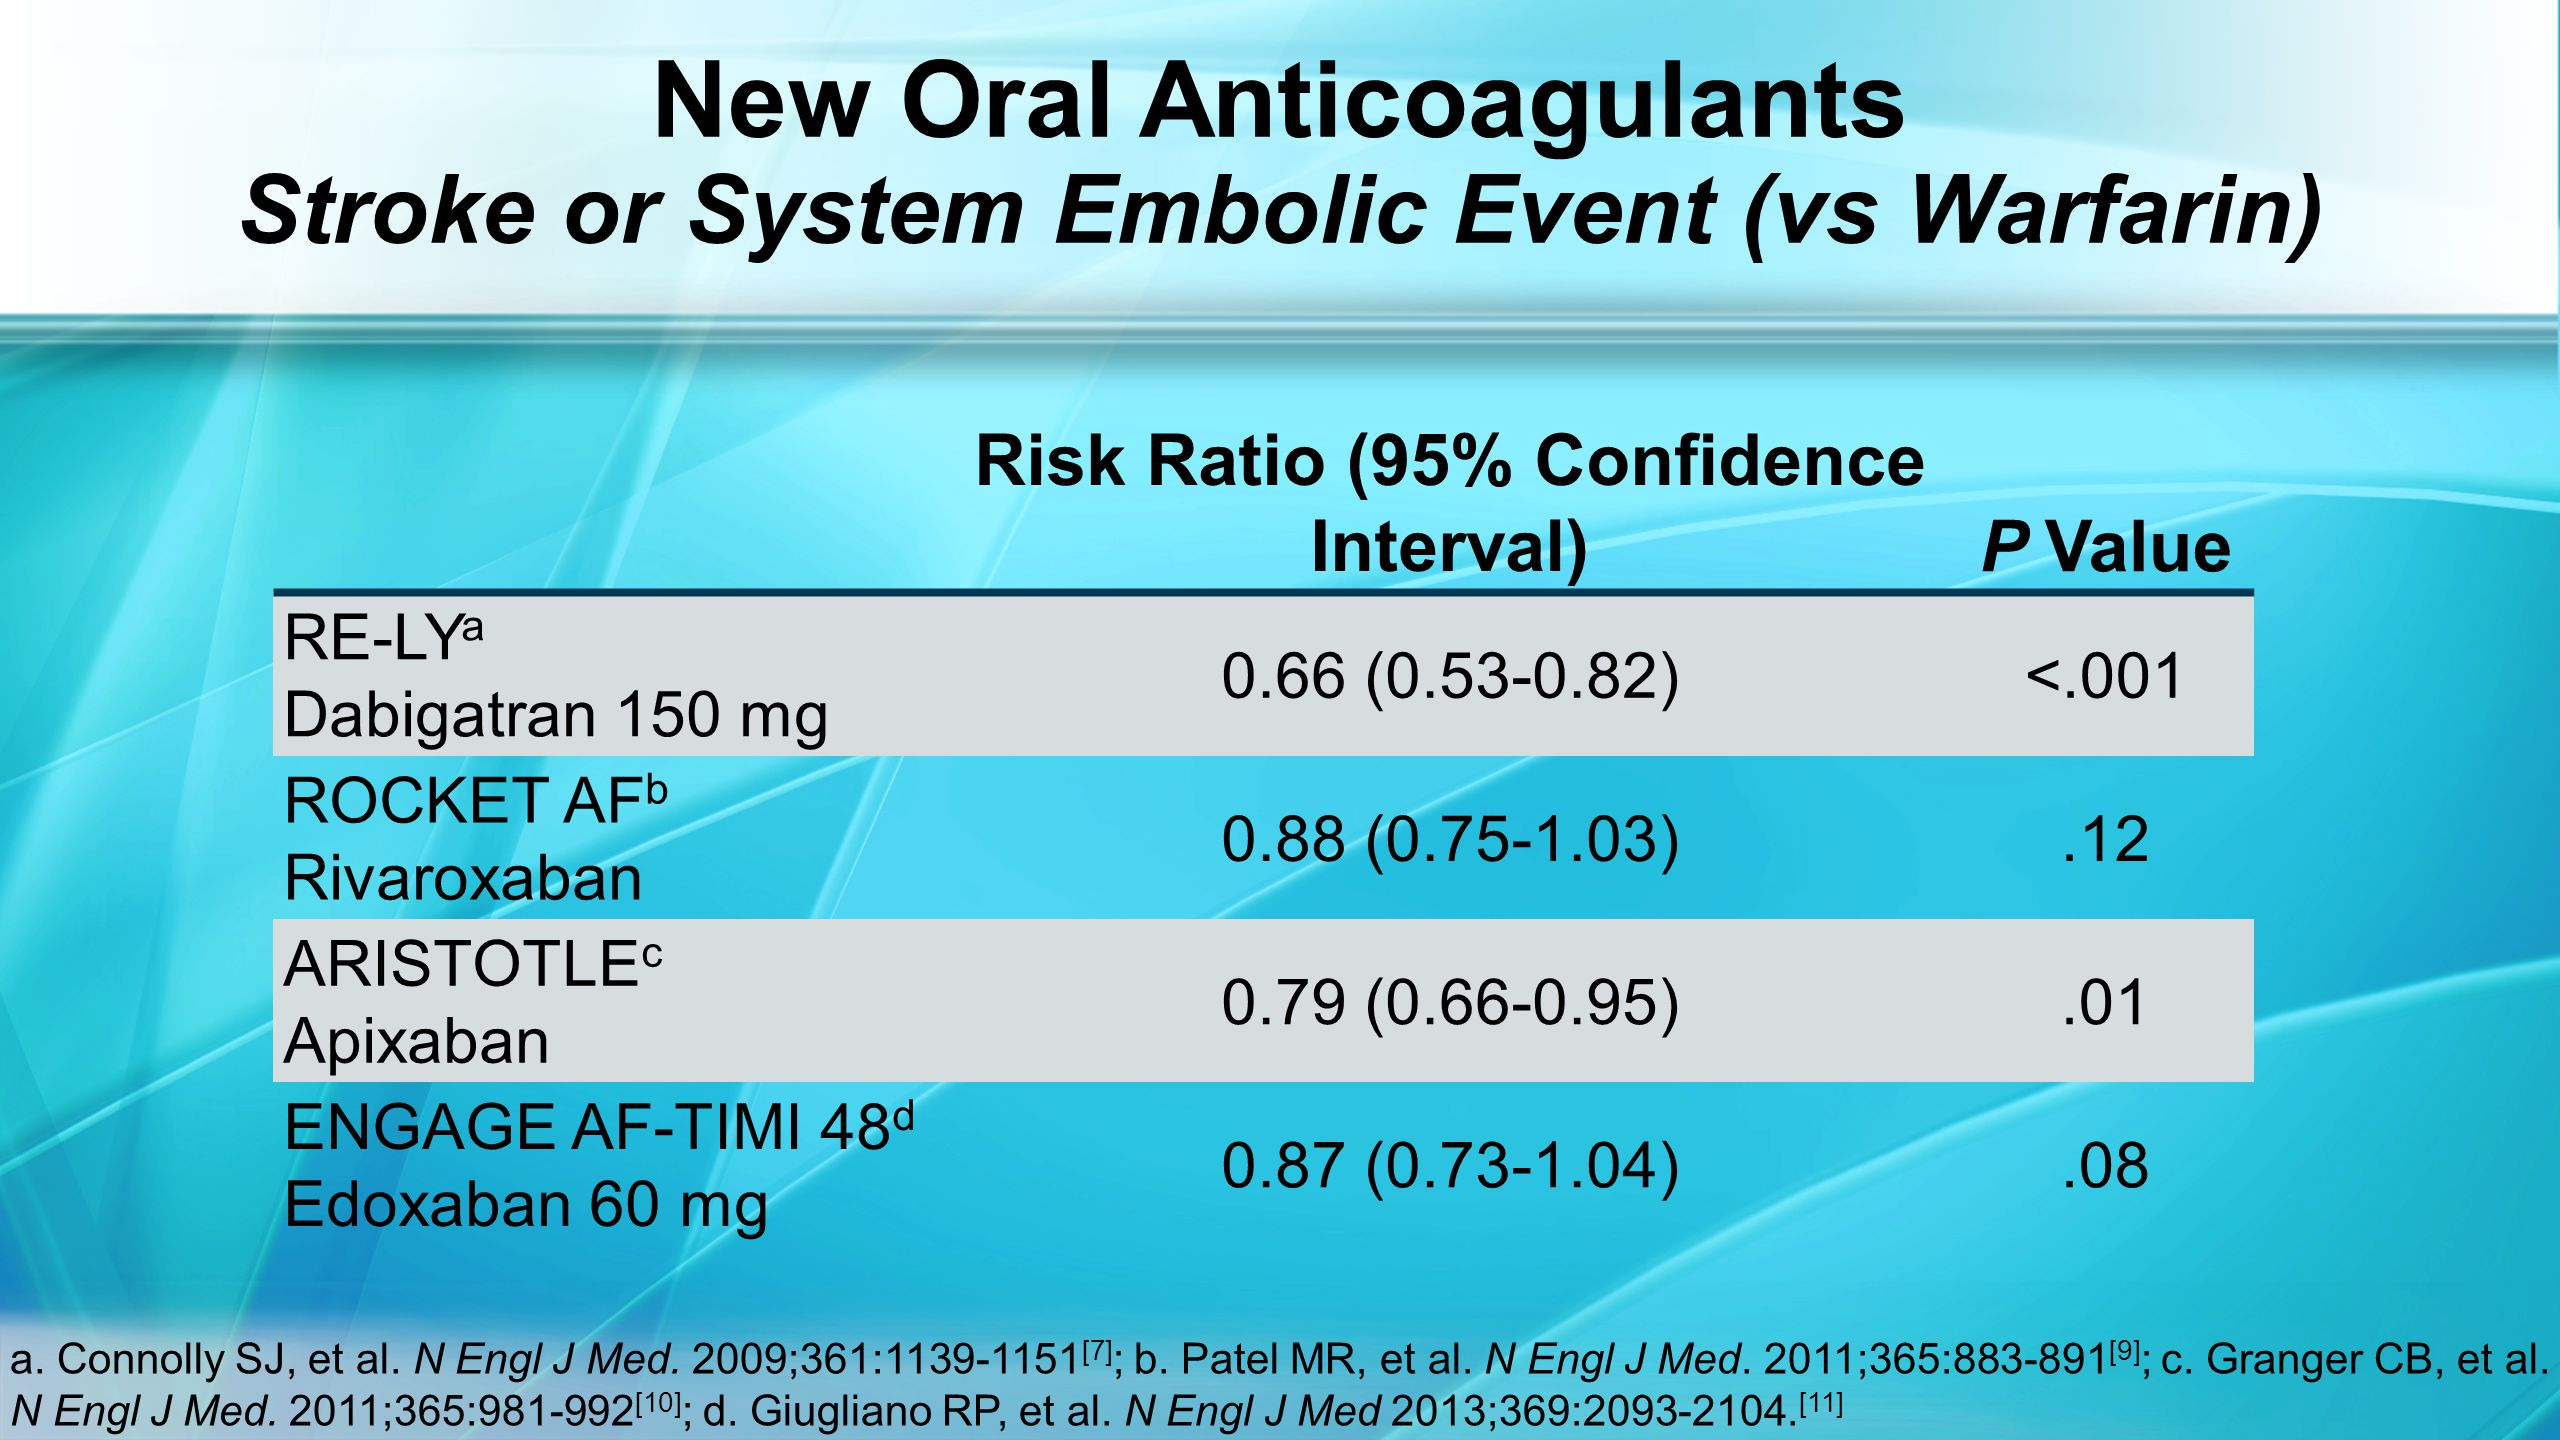 New Oral Anticoagulants Stroke or System Embolic Event (vs Warfarin) a.